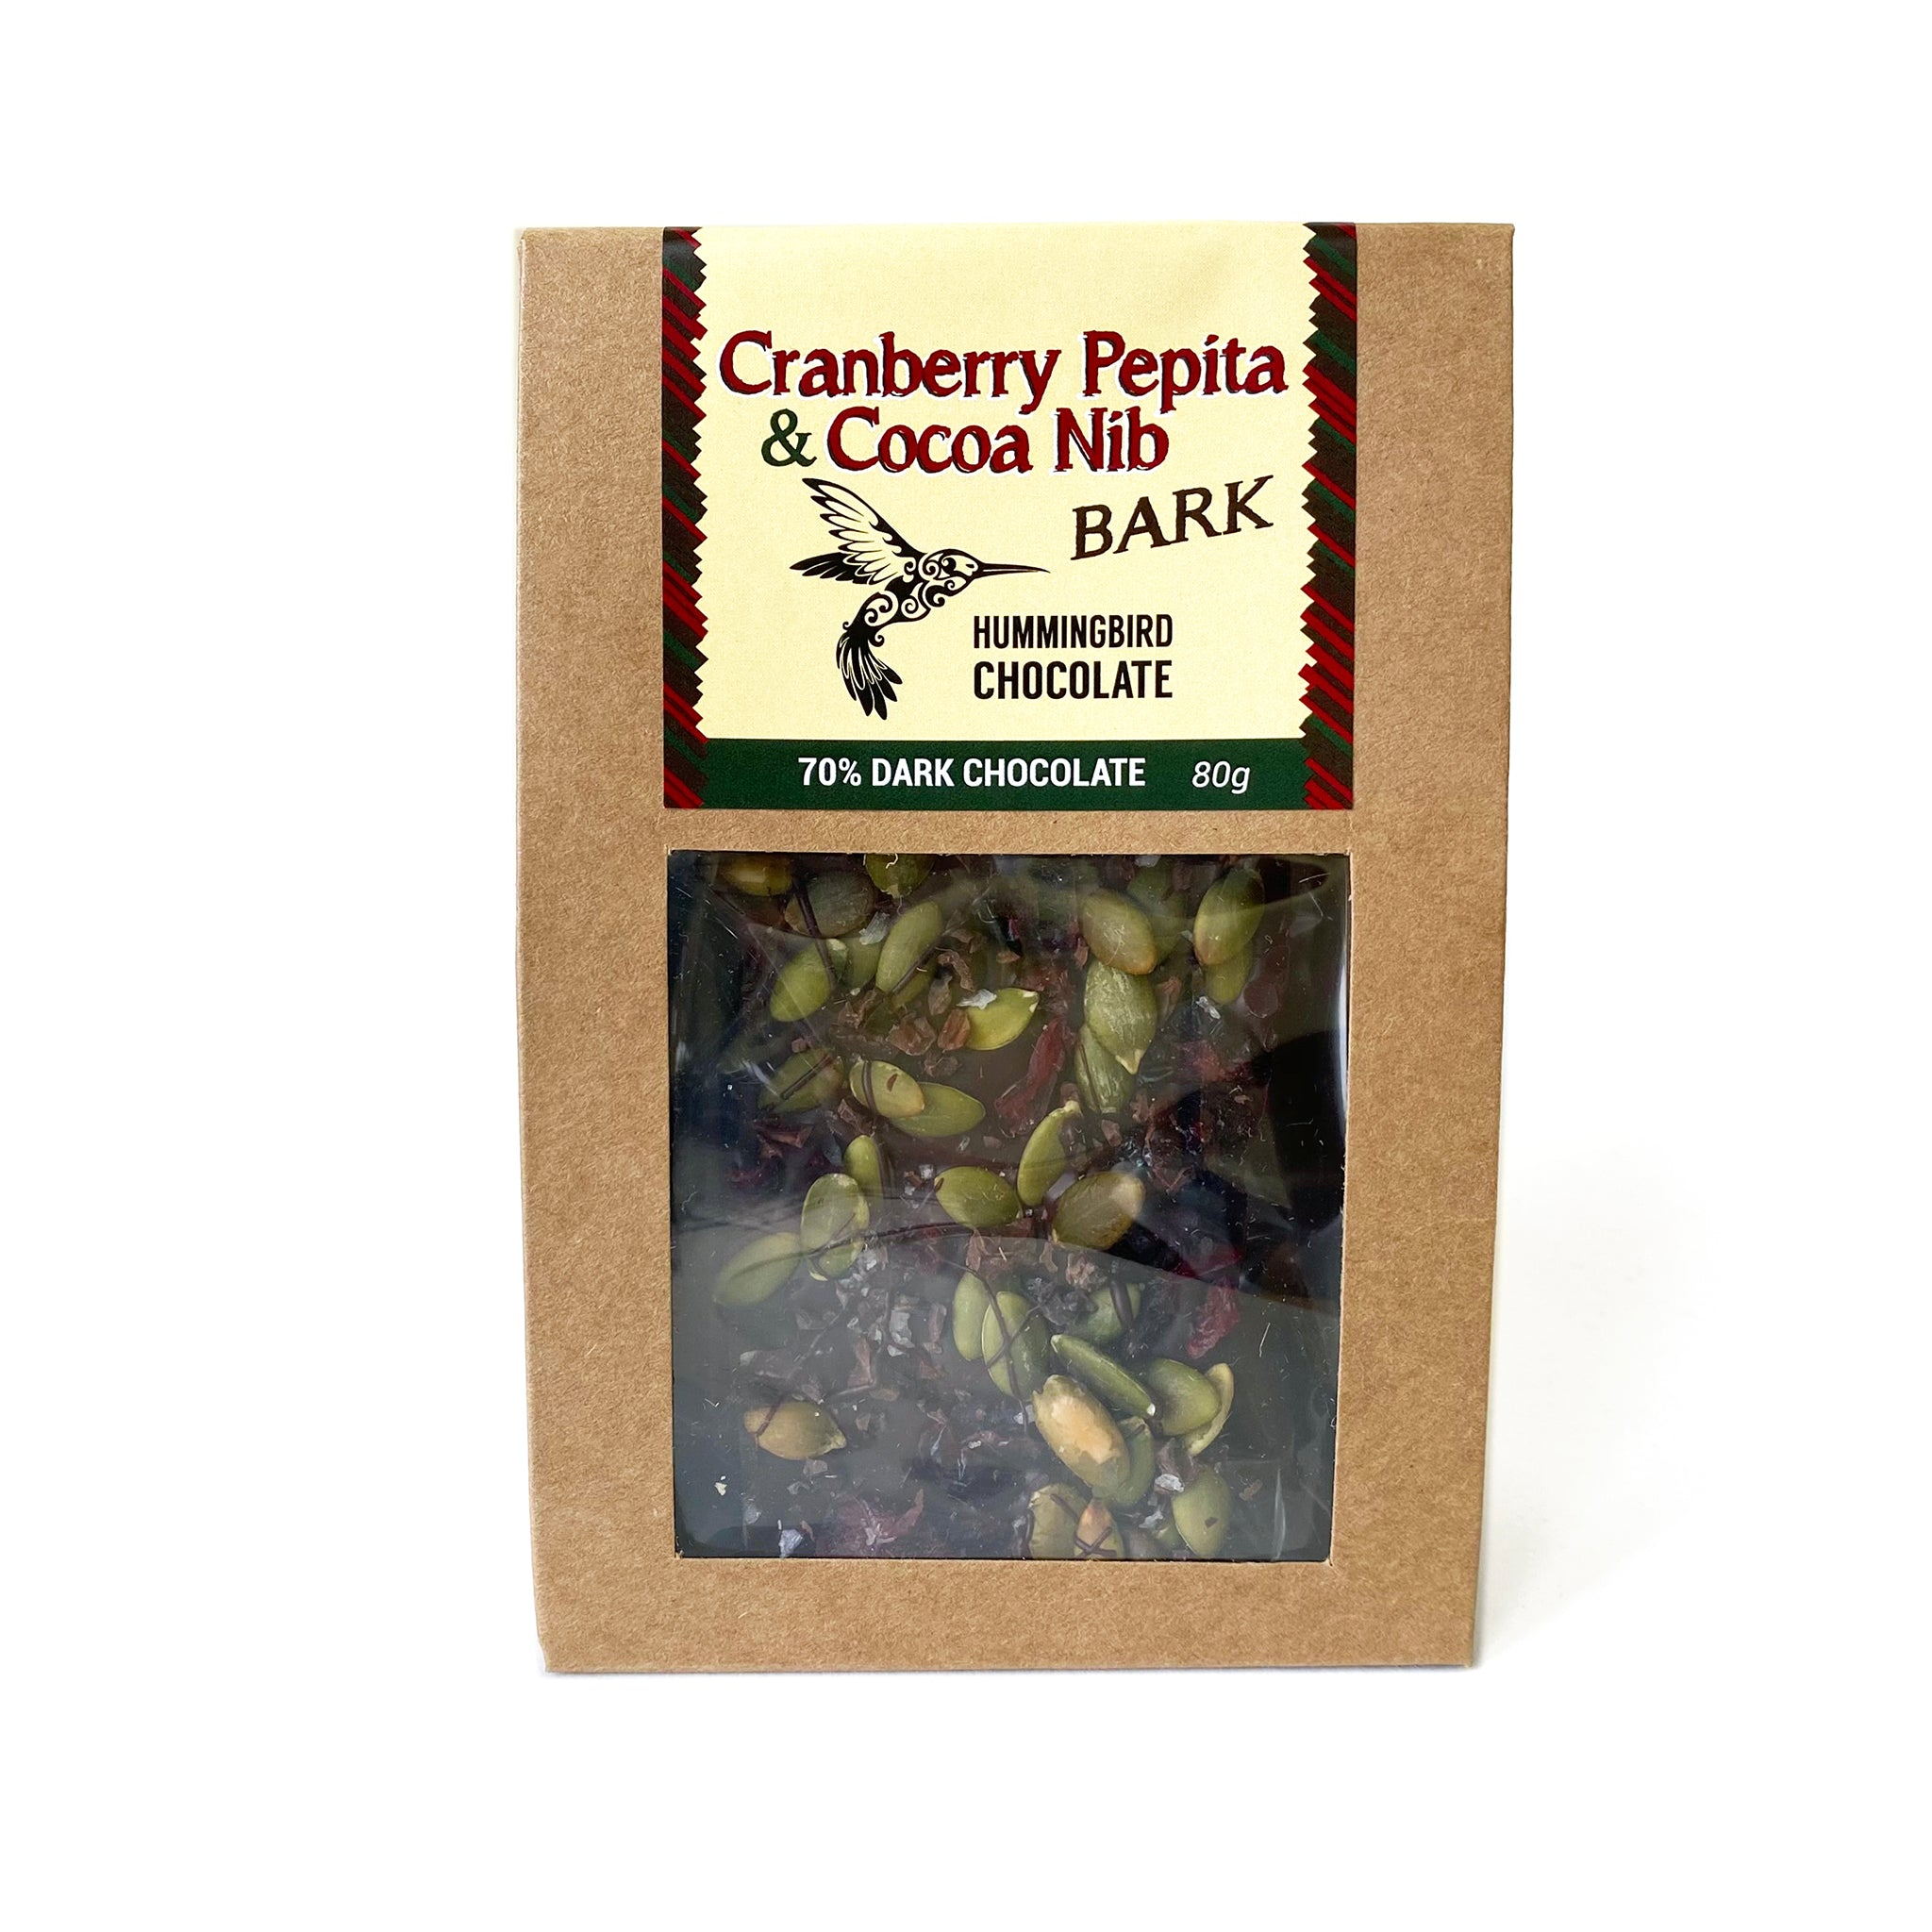 Cranberry Pepita & Cocoa Nib Bark, Hummingbird Chocolate, front of package